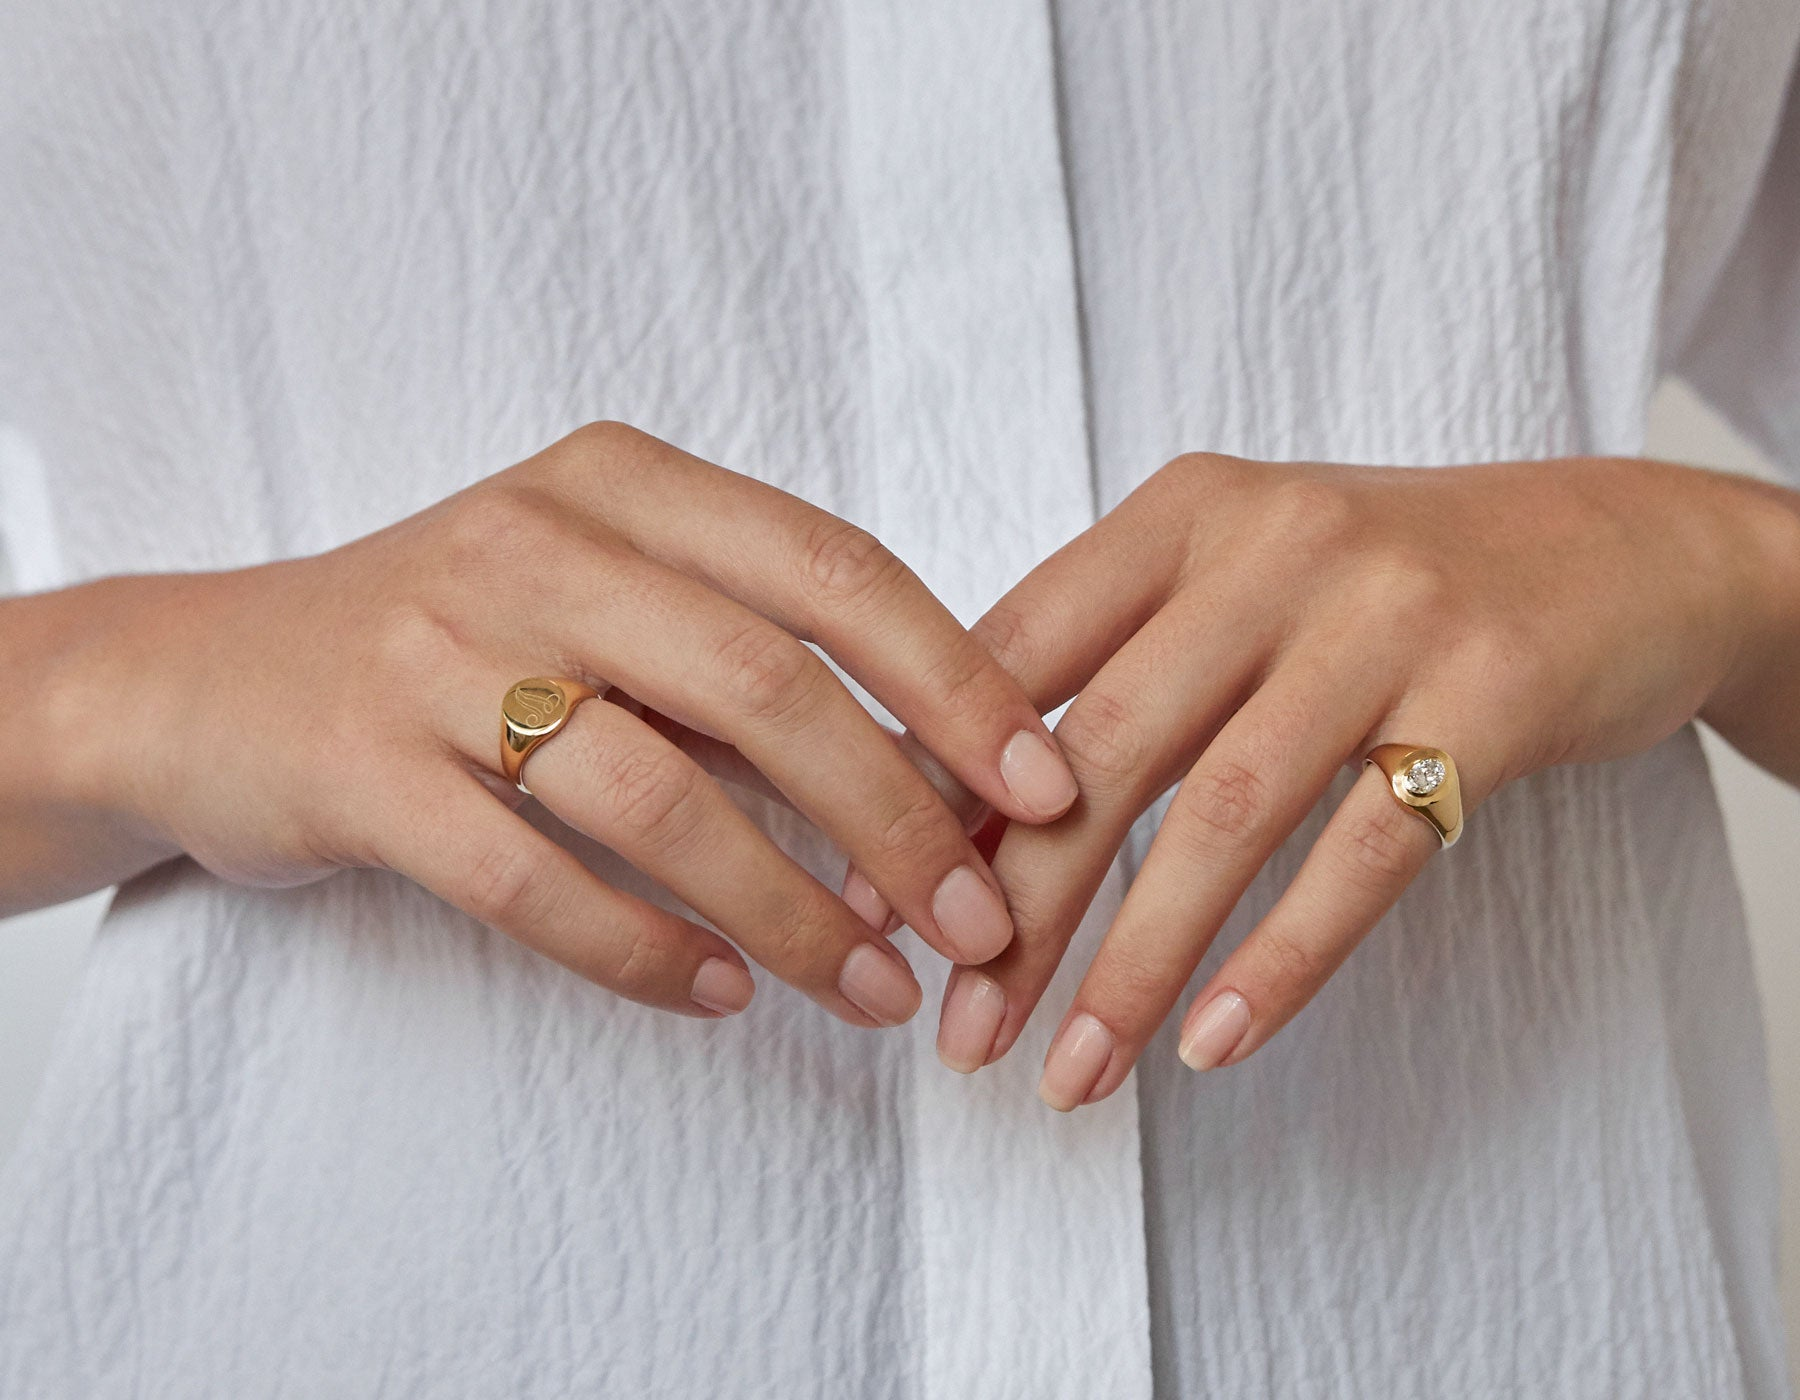 Model wearing Vrai 14k yellow gold signet ring with engraved initial and diamond